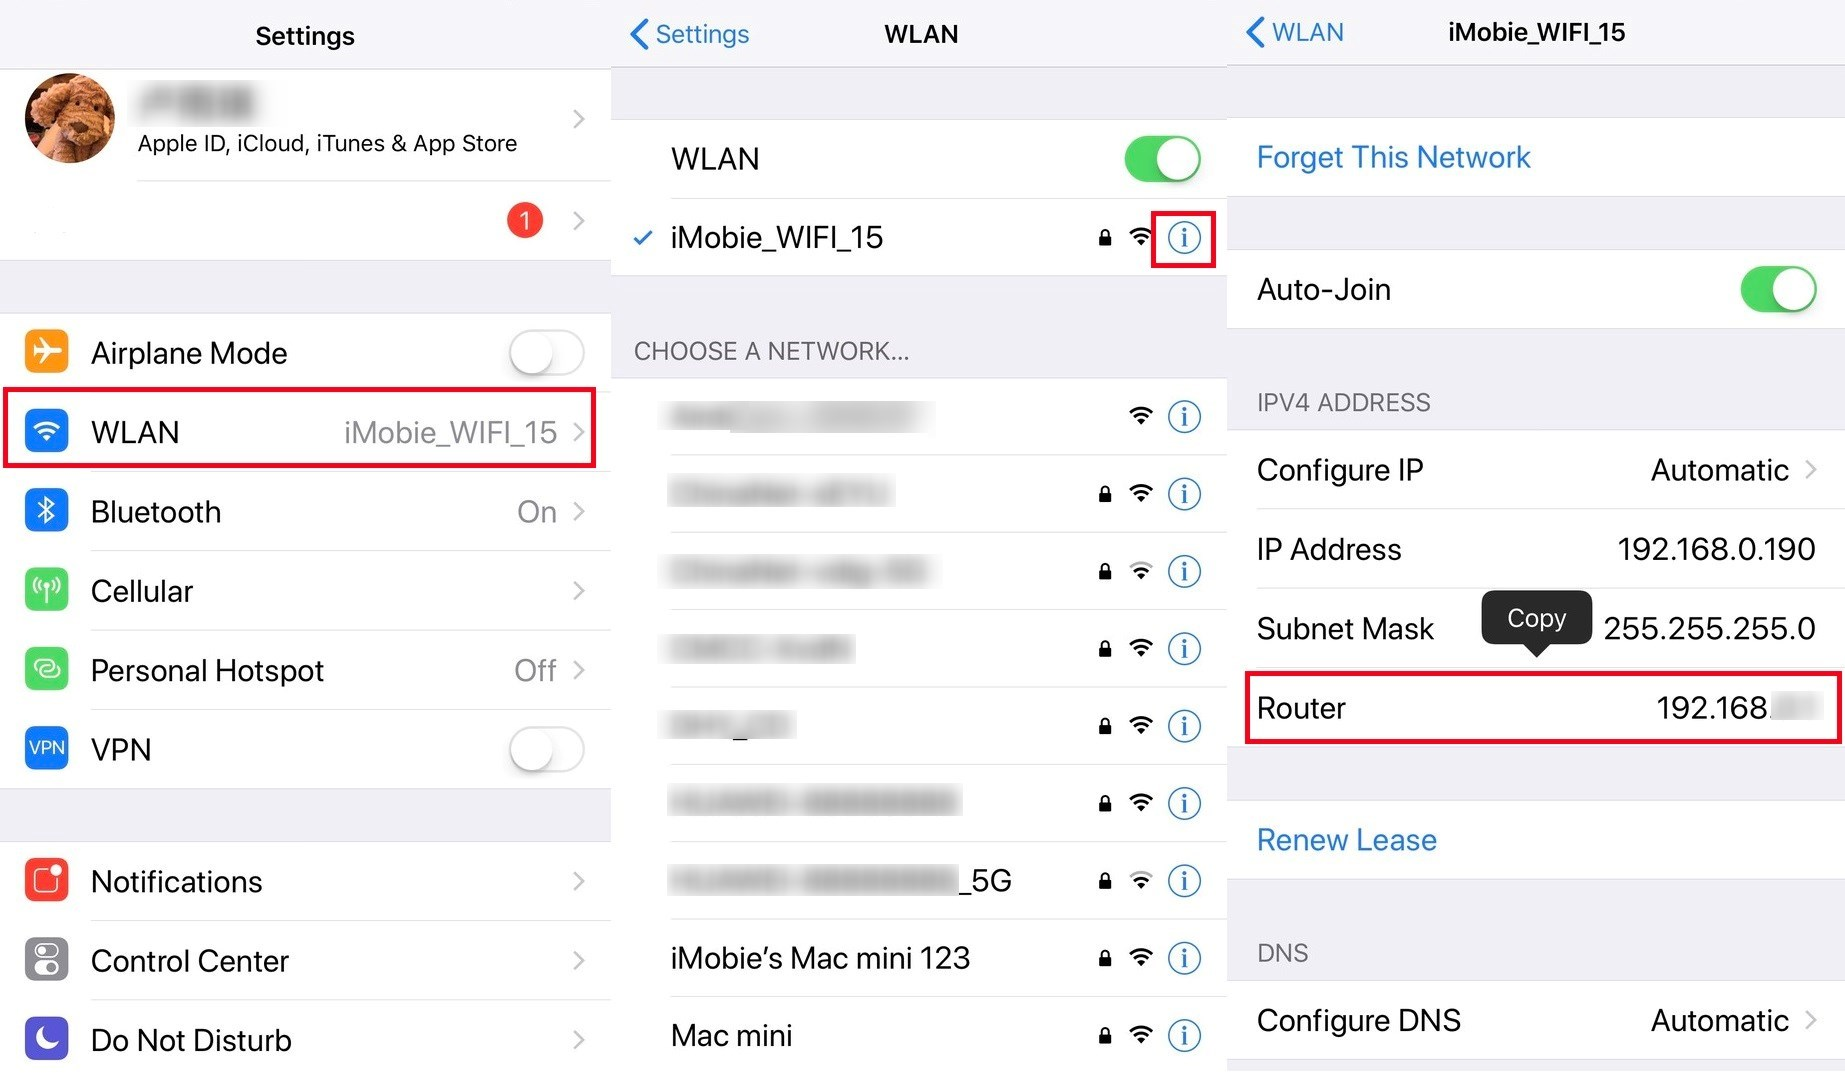 How to See Wi-Fi Password with Router Settings – Step 1